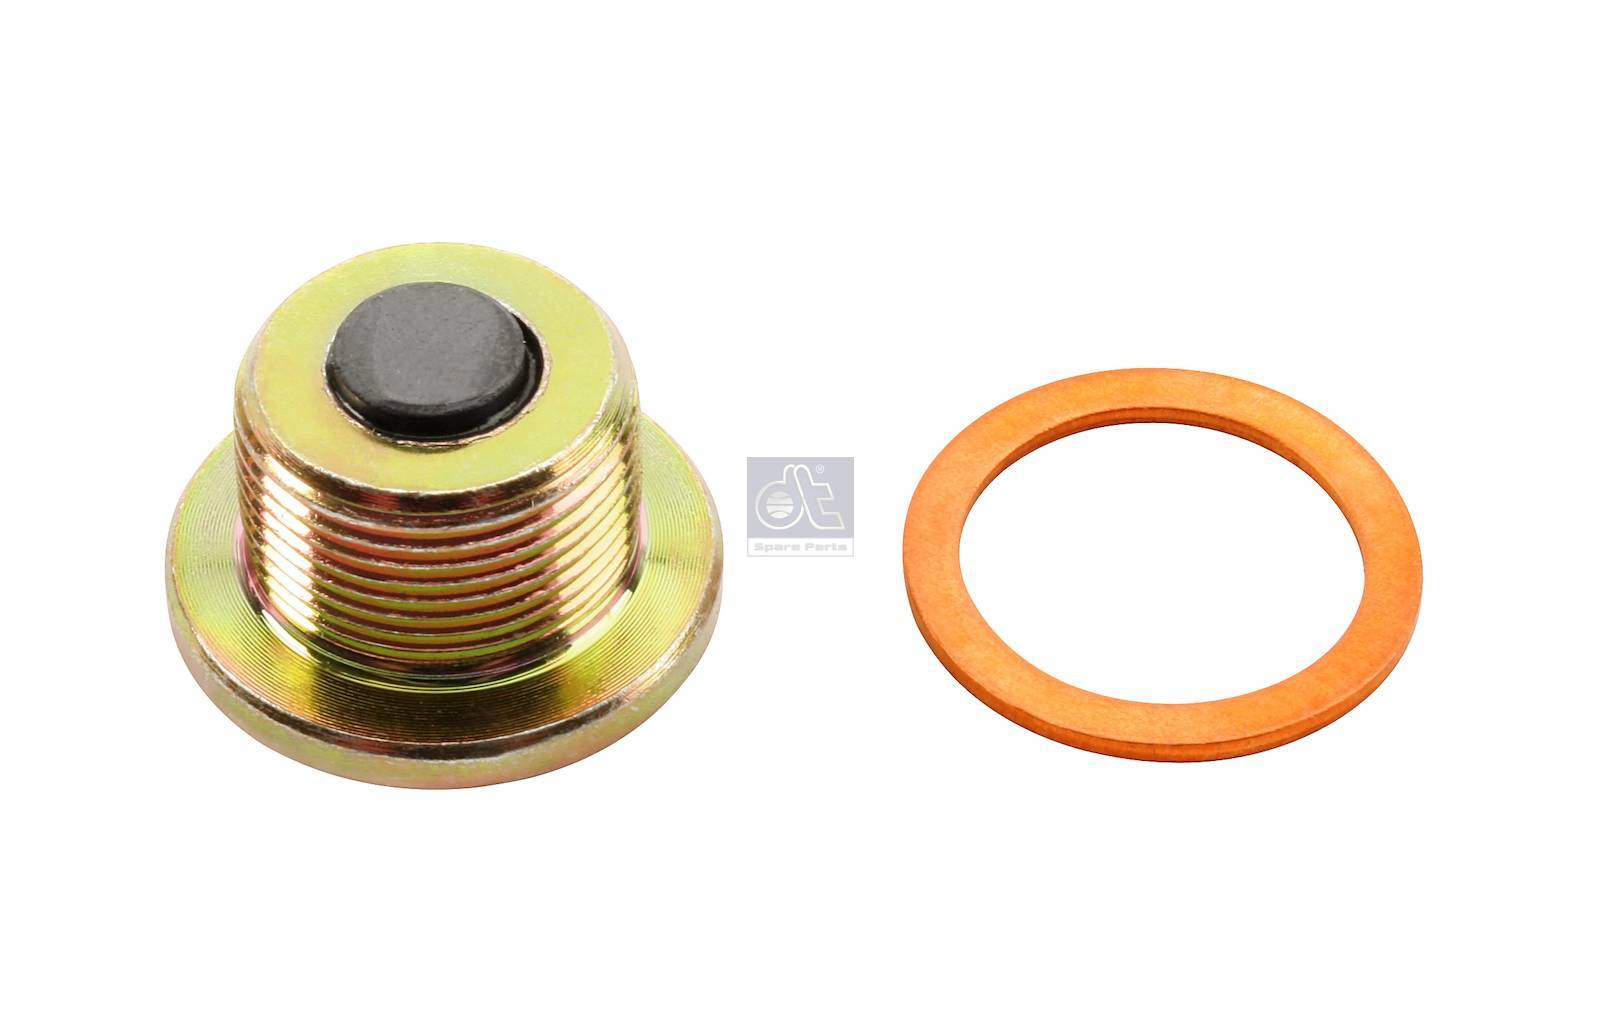 DT 4 90294 Screw plug, oil sump, with seal ring 4039970032S suitable